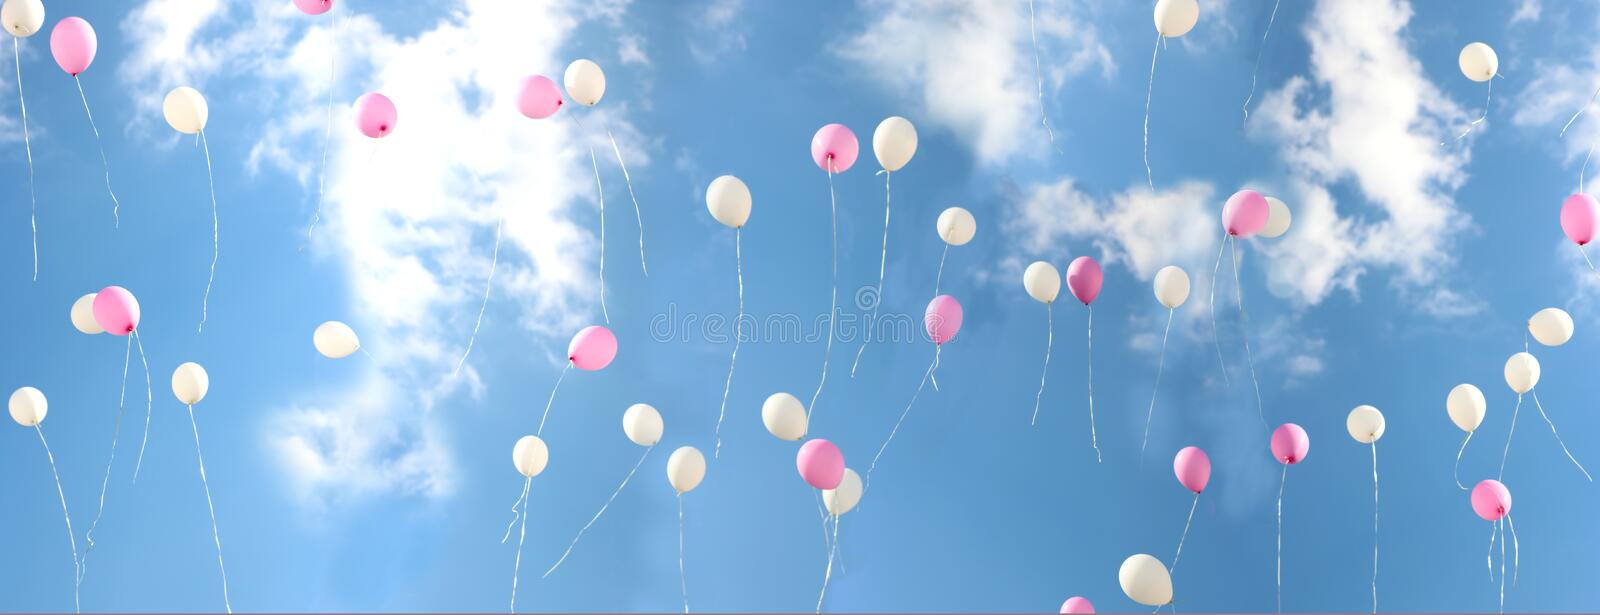 Colorful bouncing balls outdoors against blue sunny sky. Banner stock photos